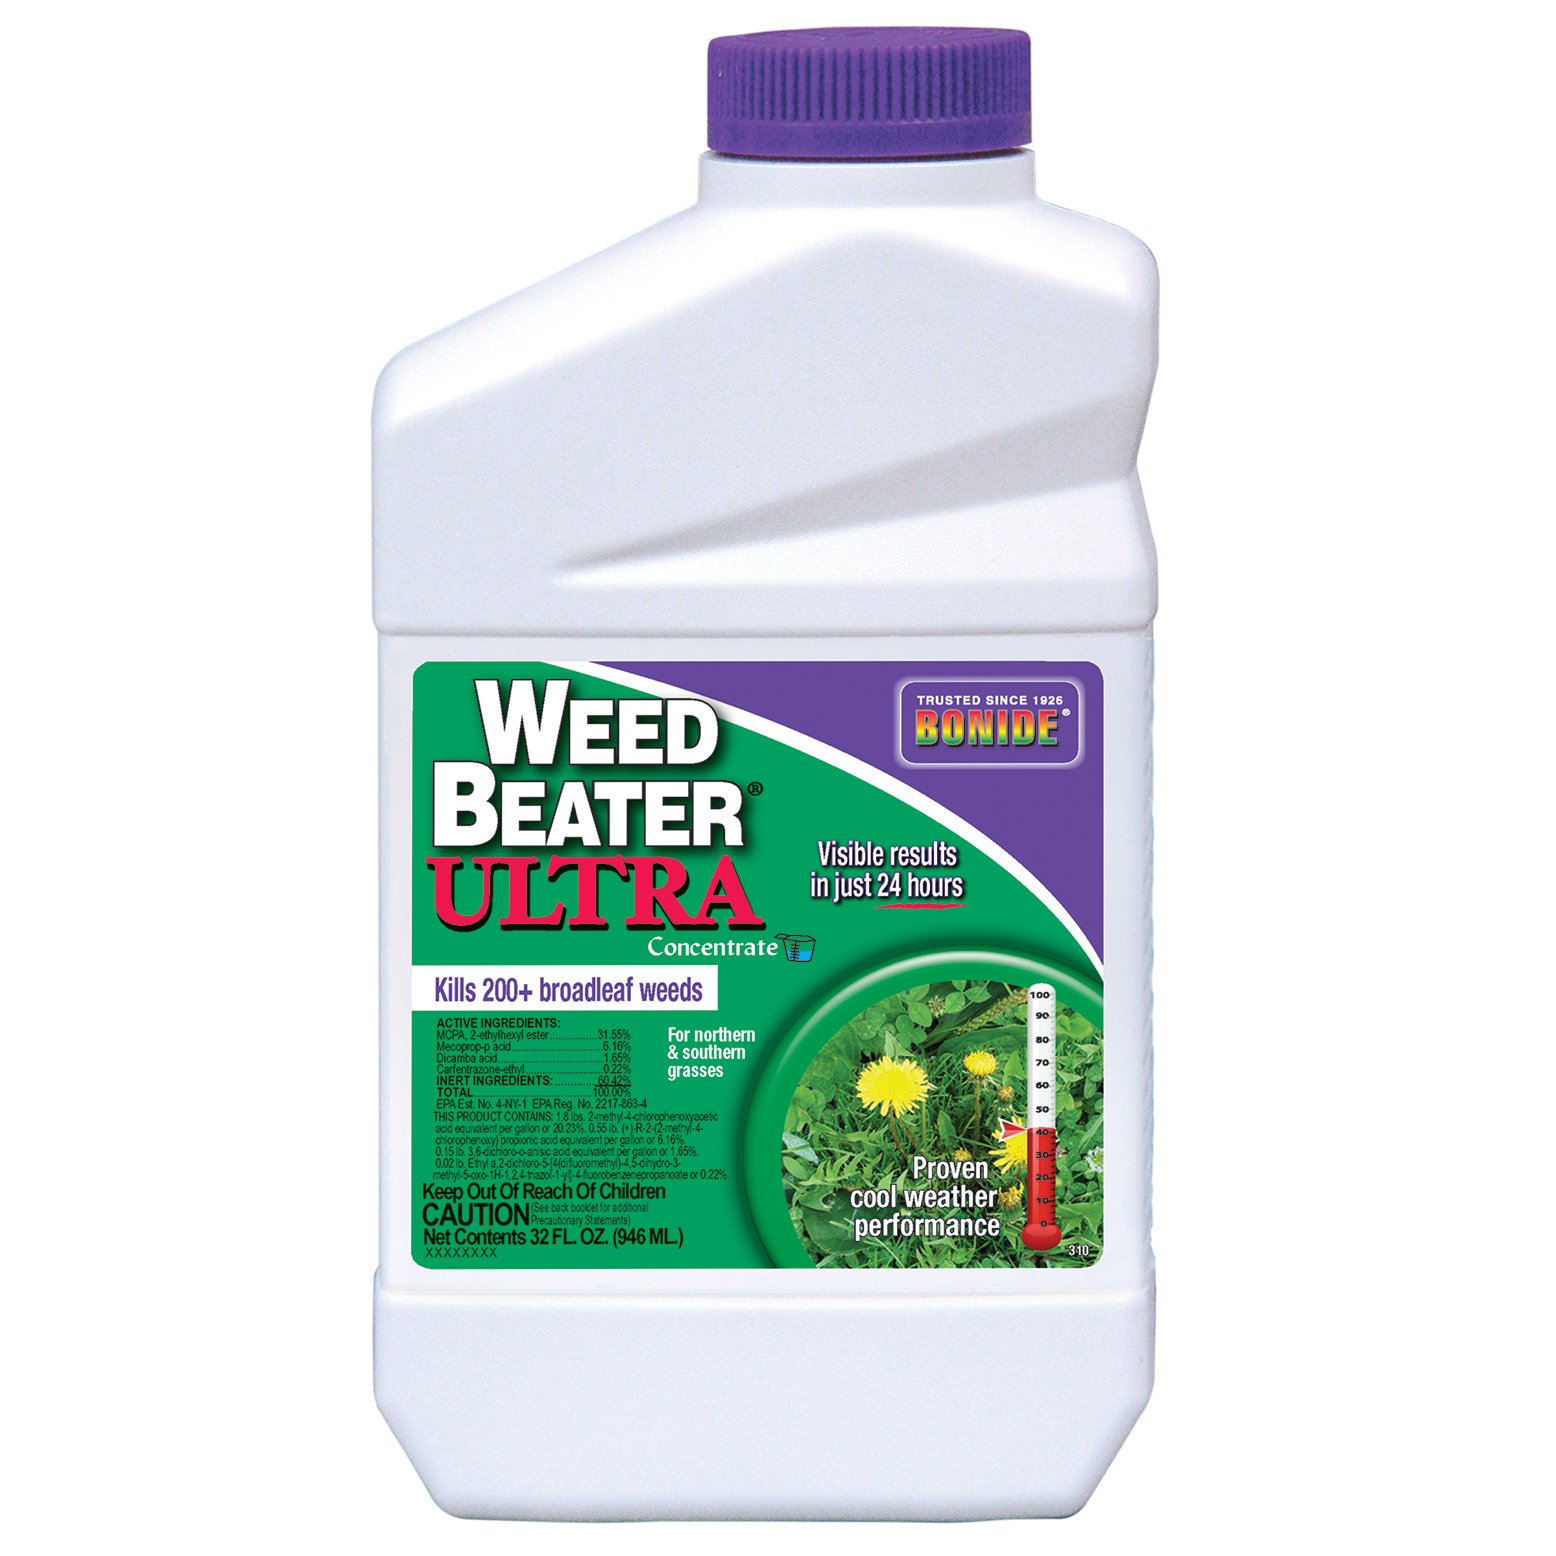 Bonide Chemical 310 Weed Beater Ultra Concentrate